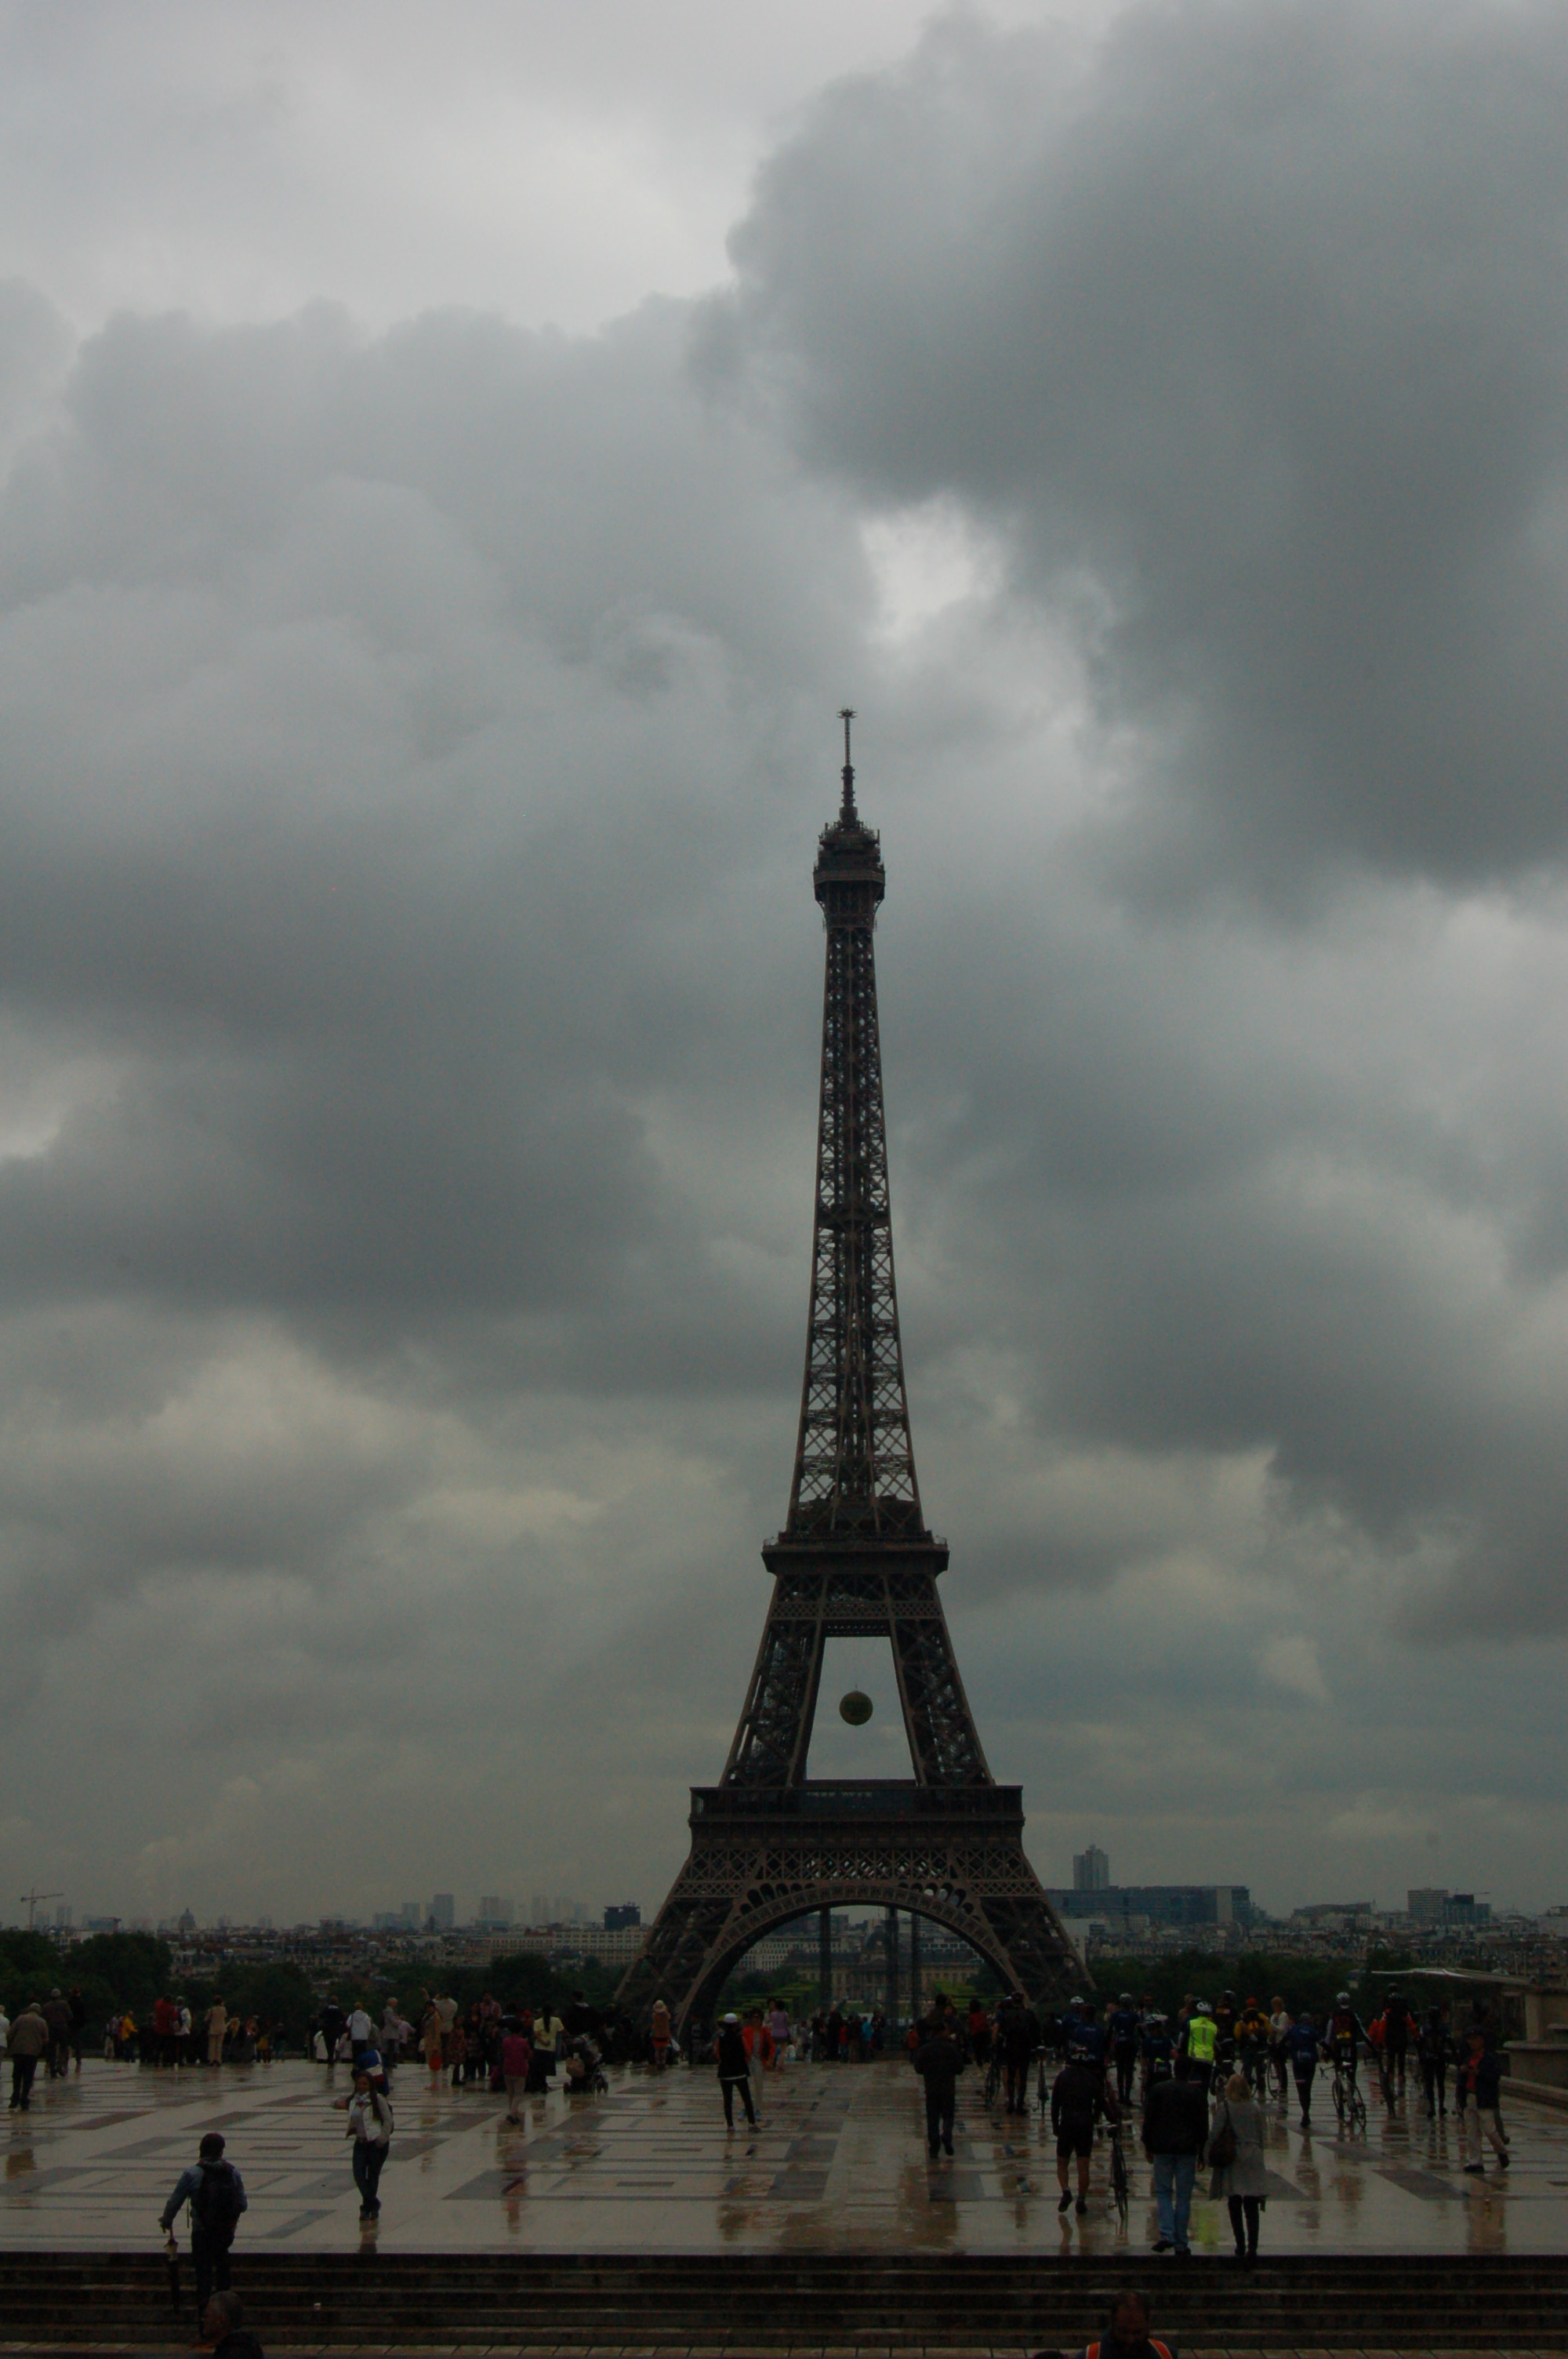 Eiffel Tower in the Distance